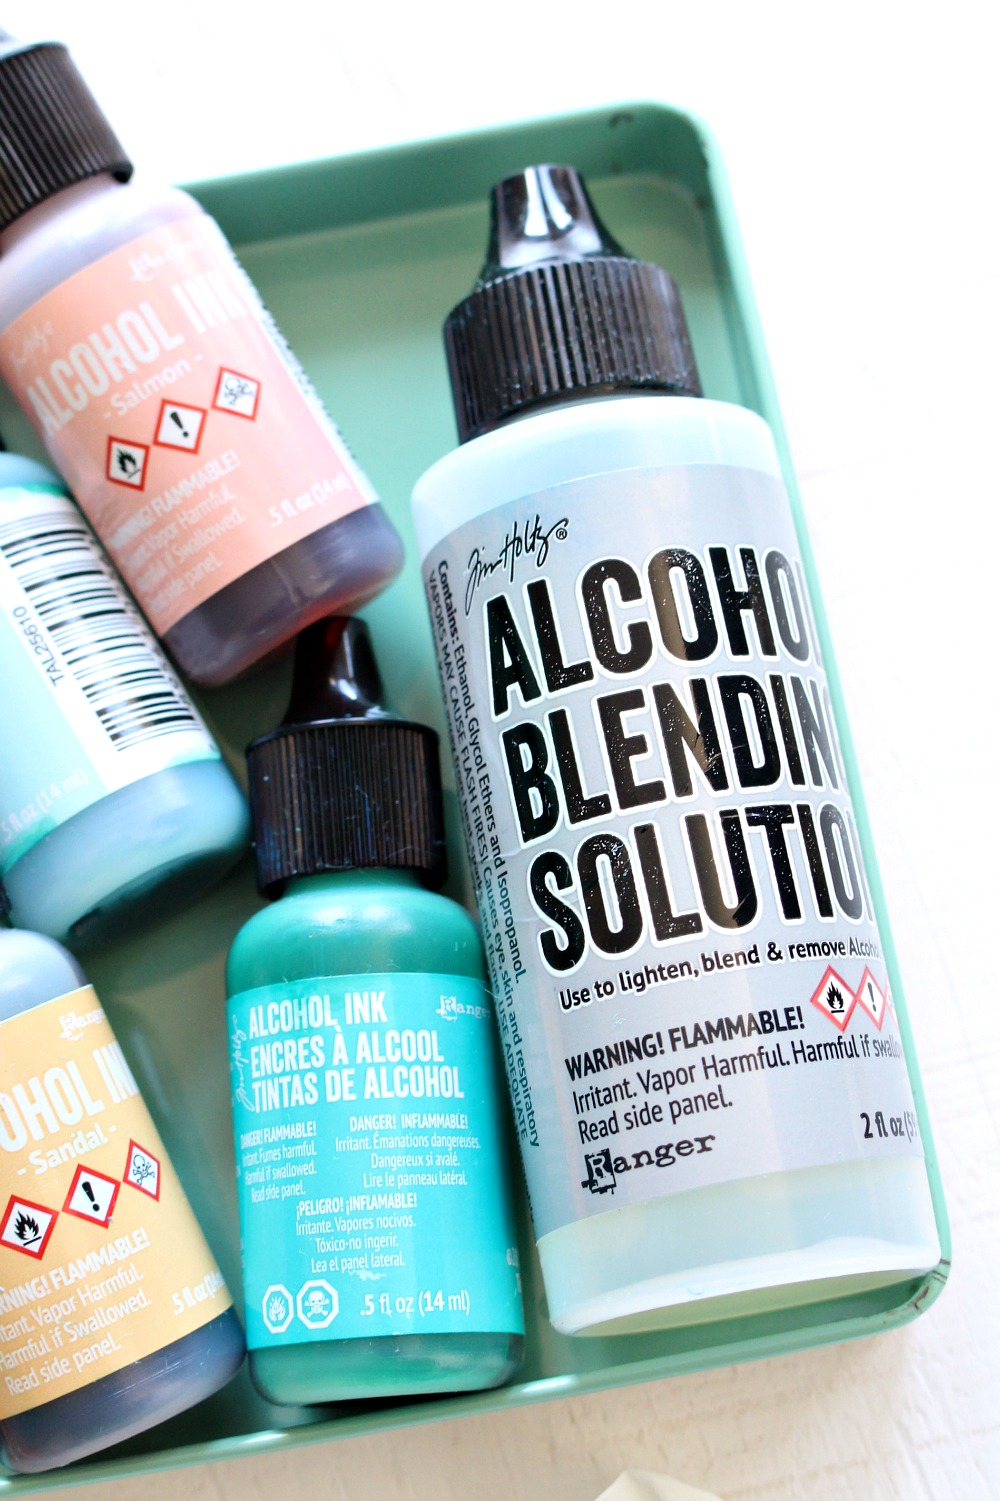 Alcohol Blending Solution or Rubbing Alcohol?